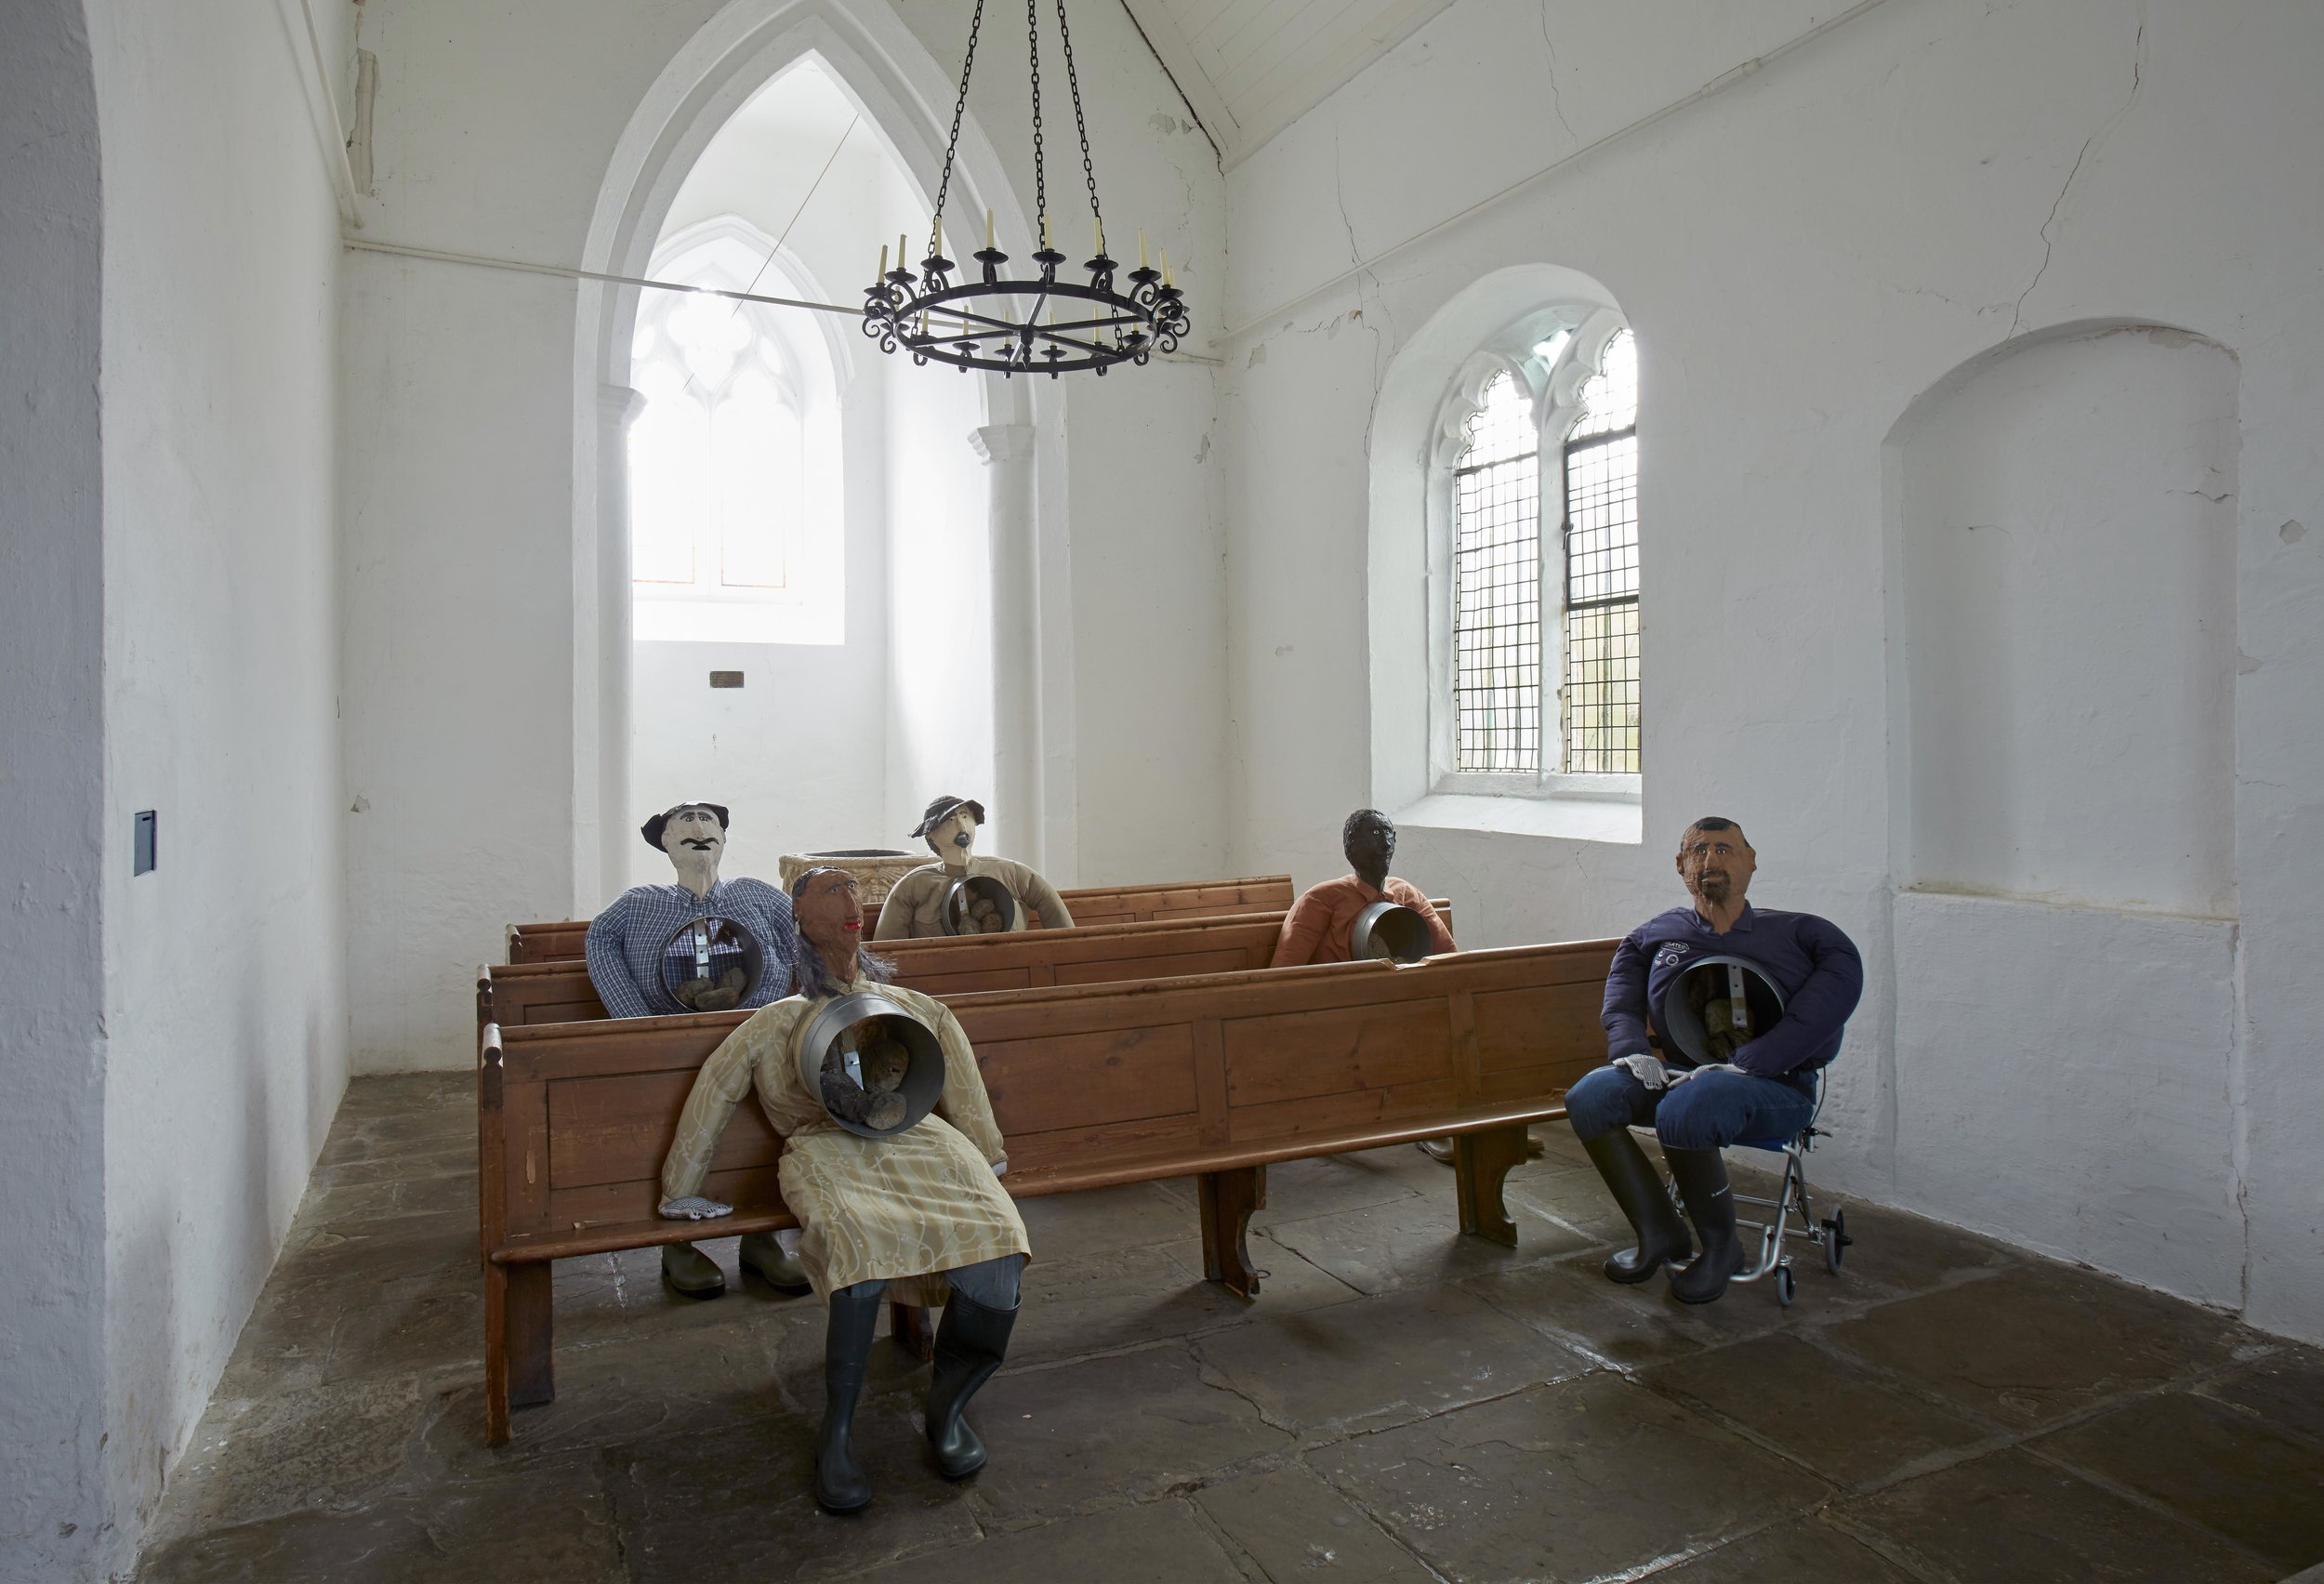 The Institute of Reconciliation, 2014–ongoing 5 papier-mâché and fabric effigies, church pews, burnt corn and clay - displayed in St Peter's Church (pictured before they were modified with a chainsaw)